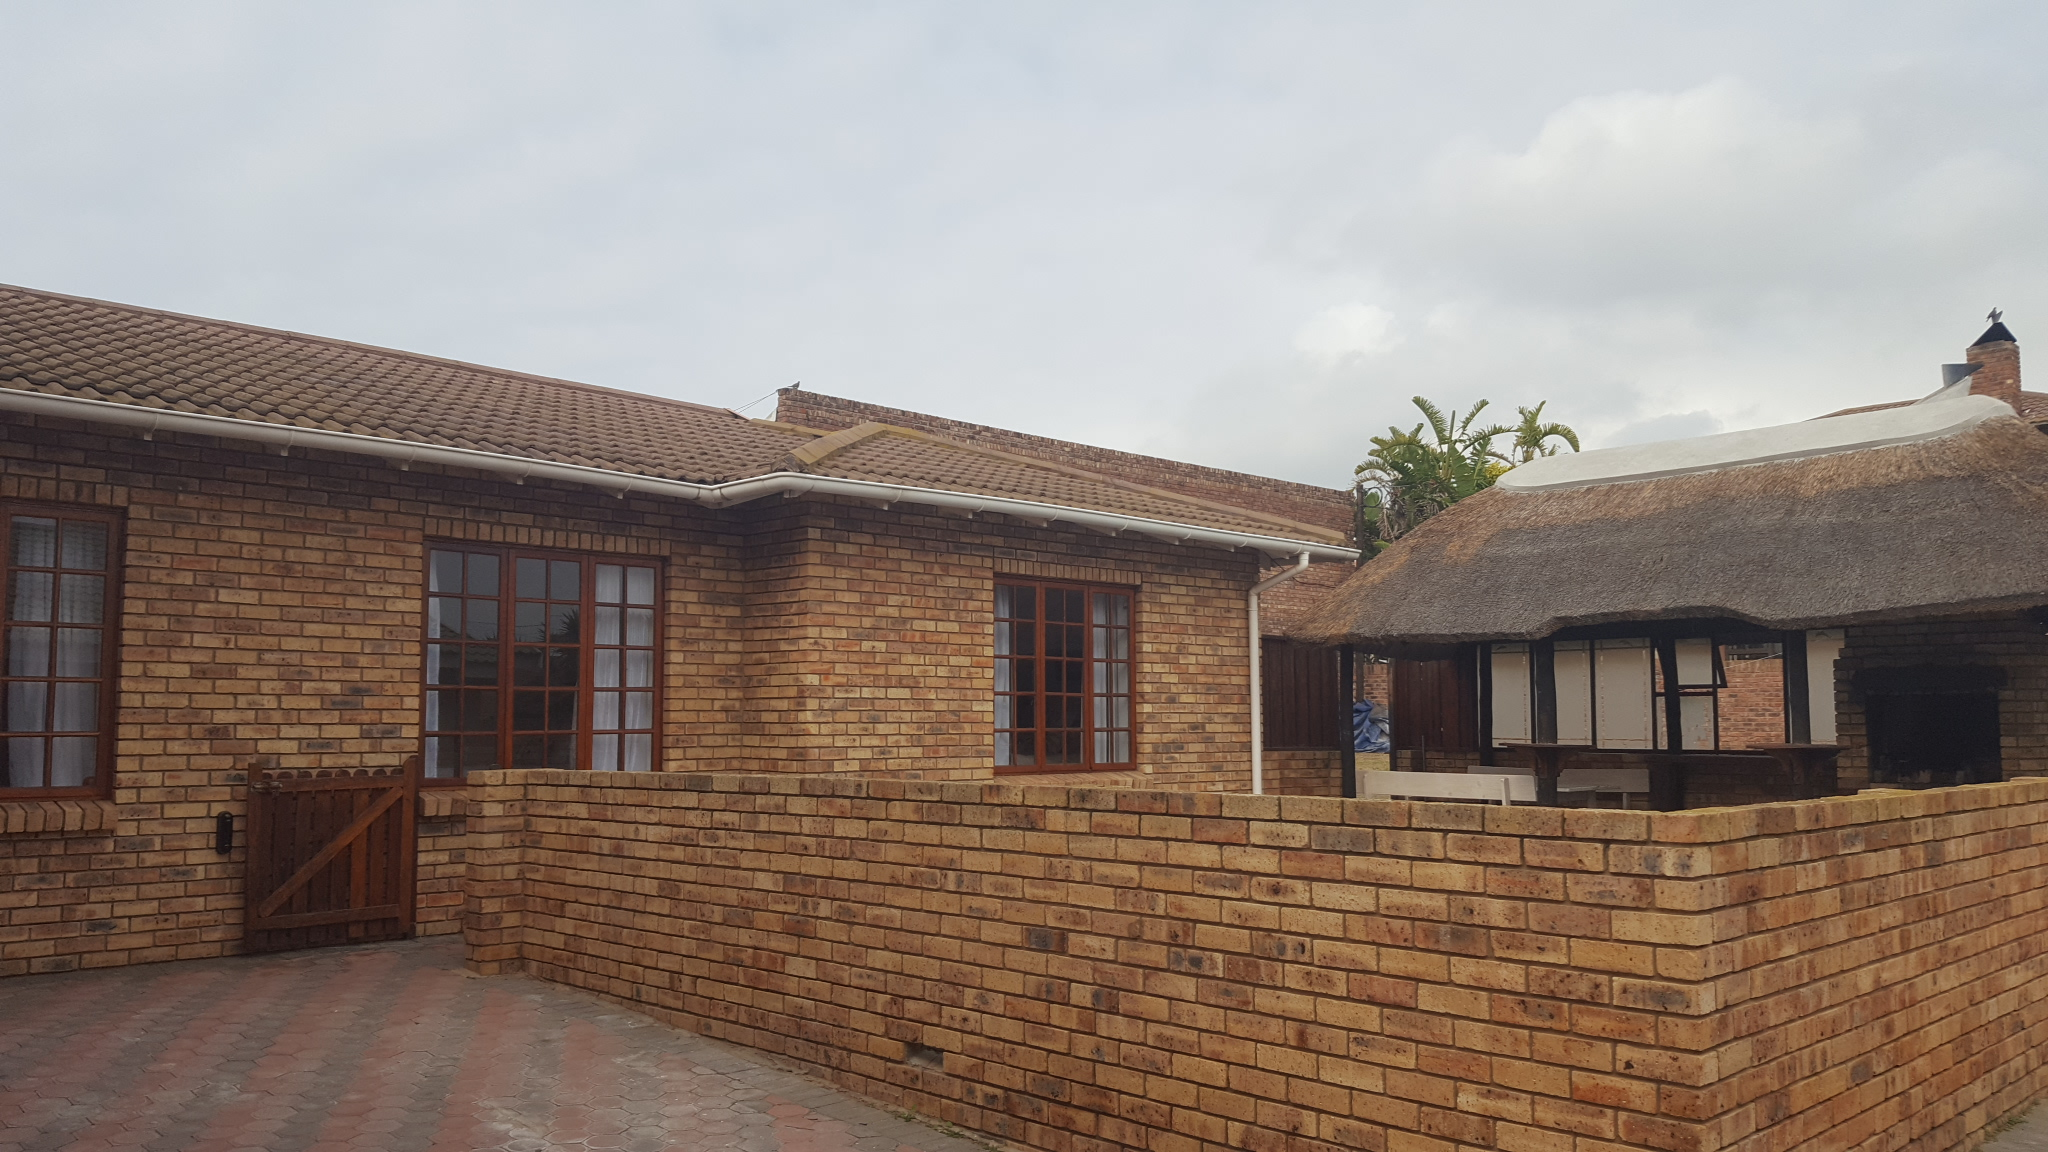 5 Bedroom House for sale in Bluewater Bay ENT0067493 : photo#1